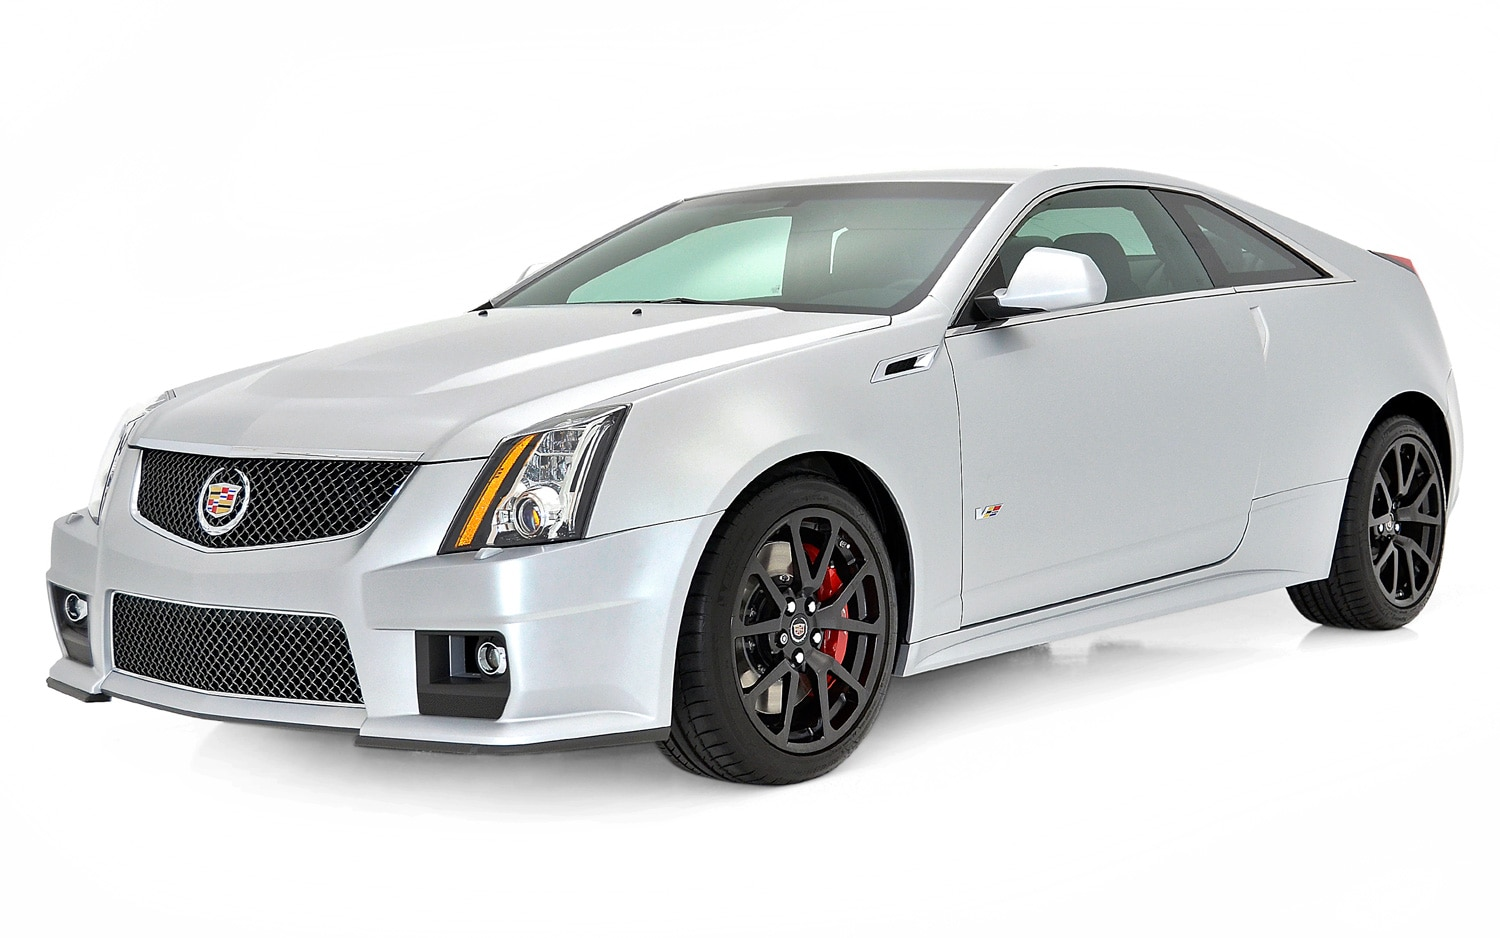 2013 Cadillac CTS V Frost Silver Front View1